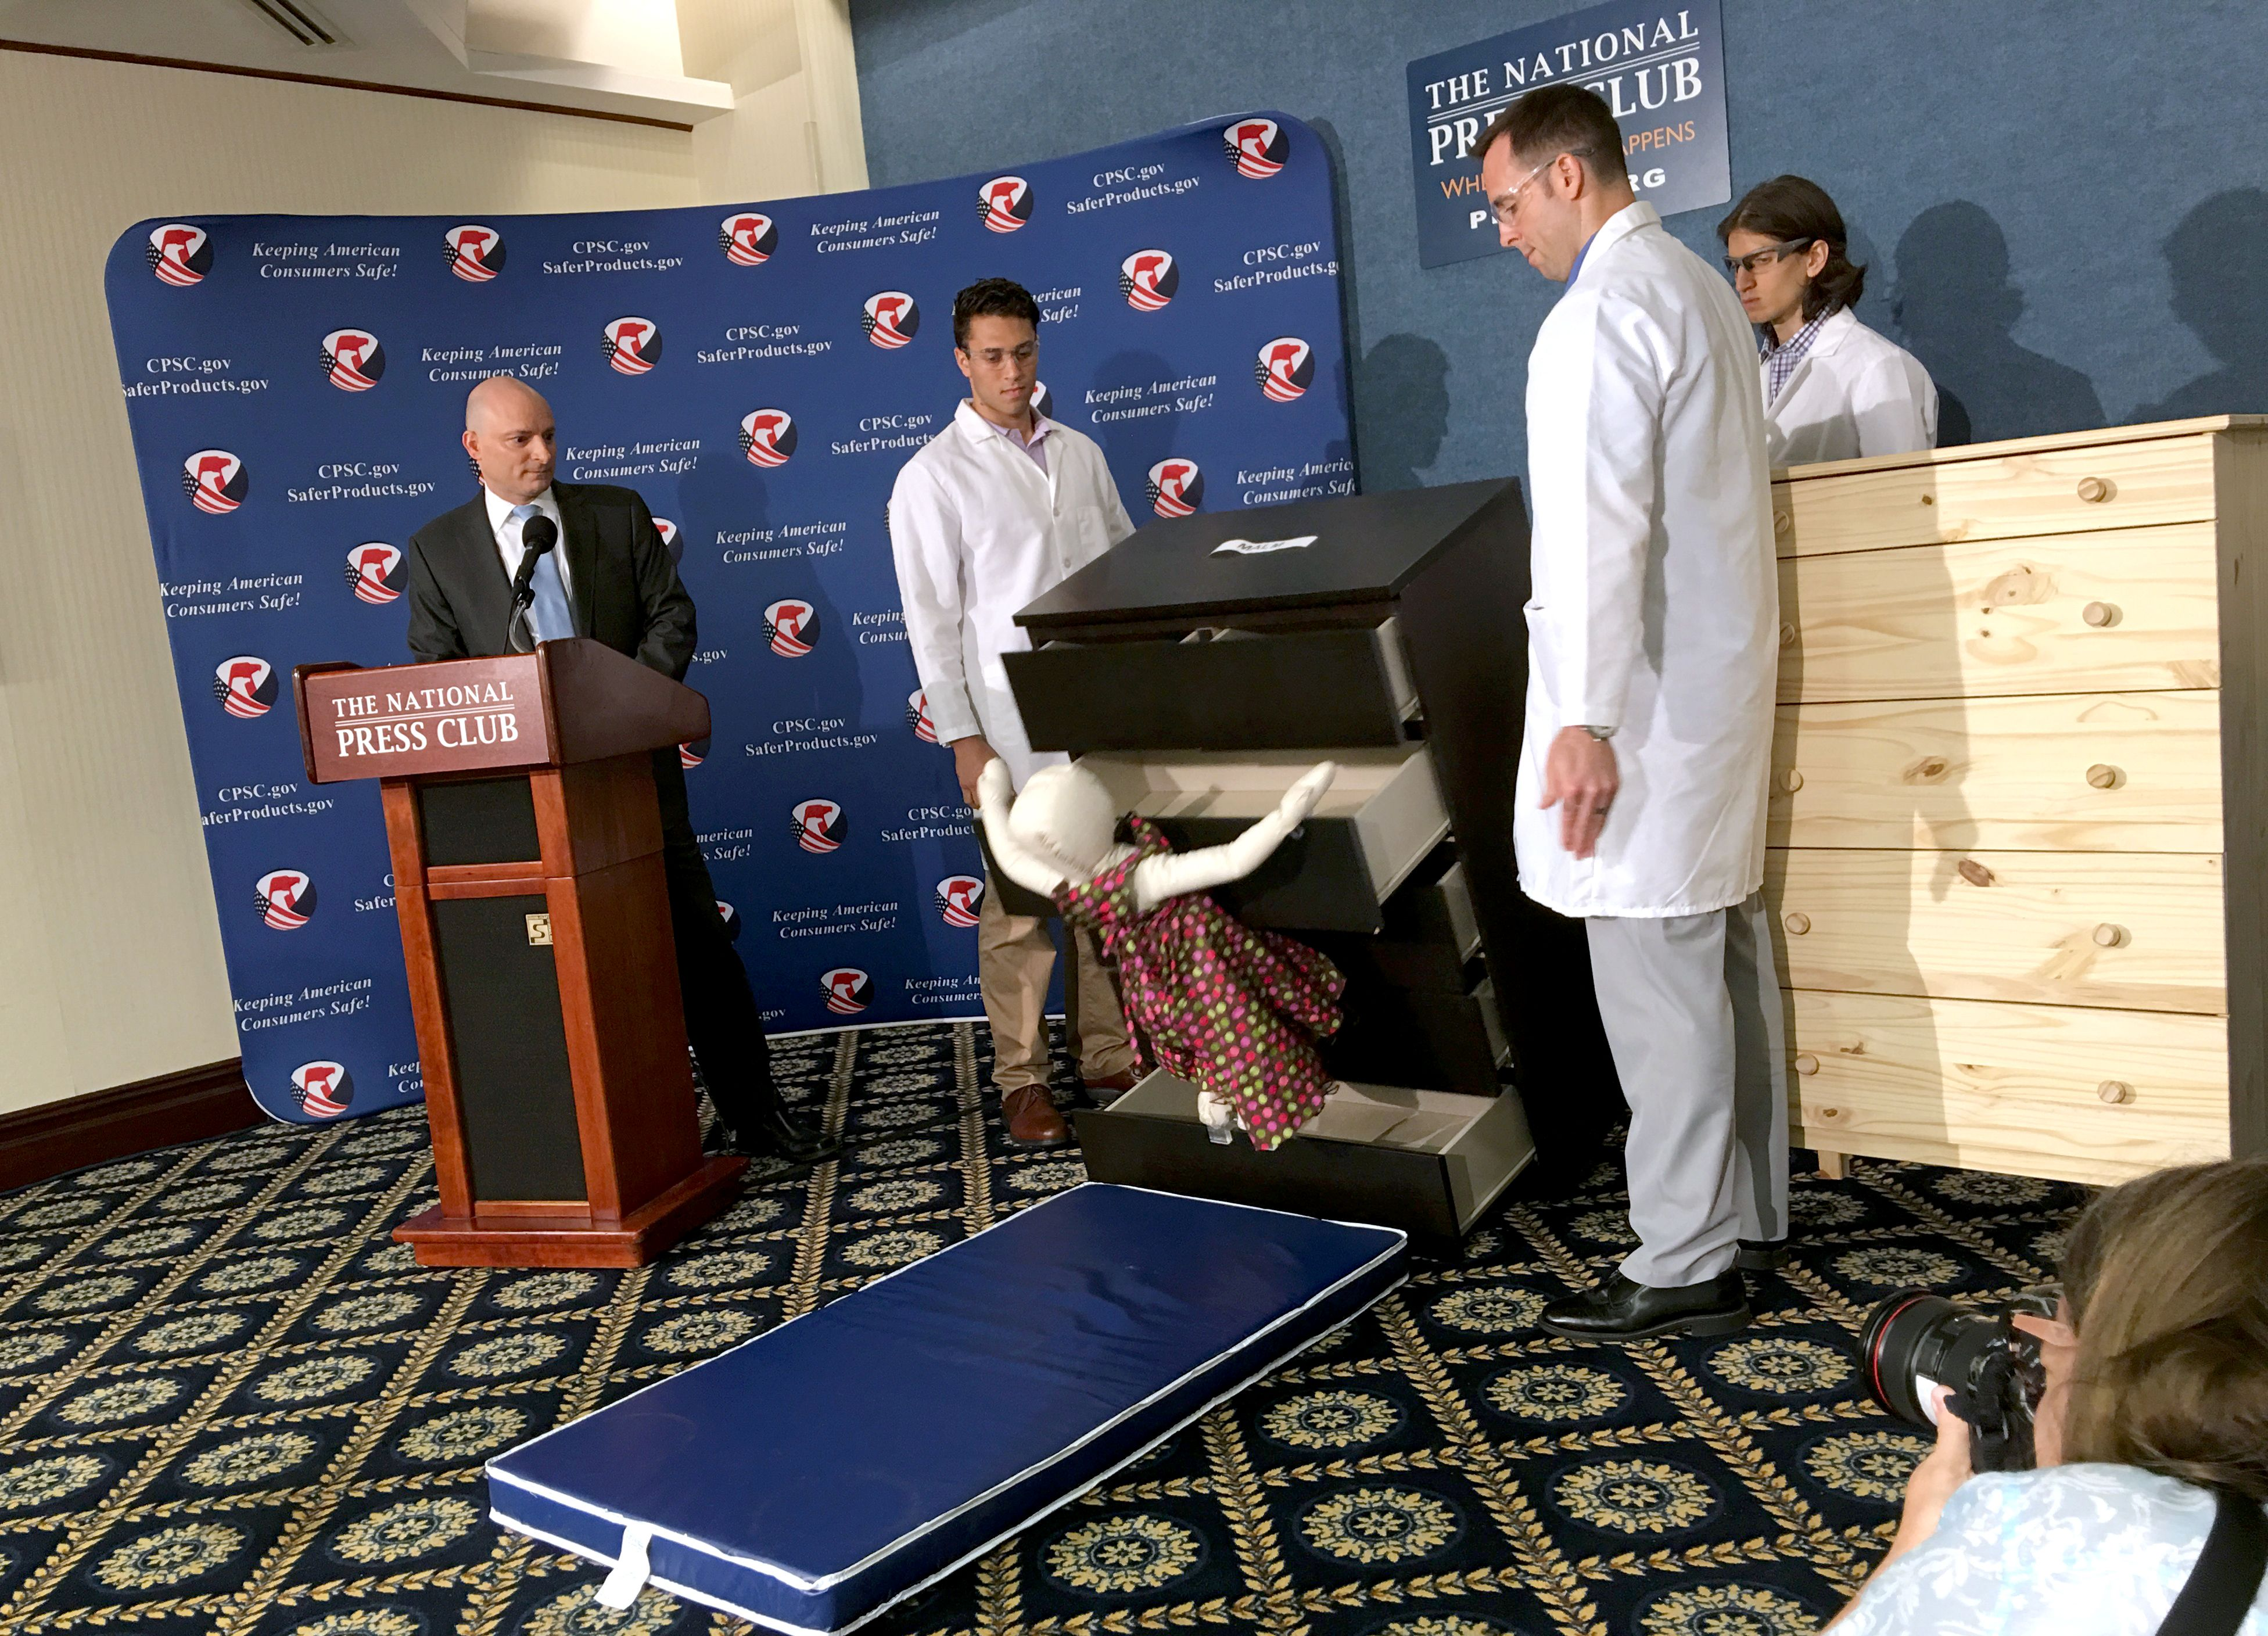 Elliot Kaye (L), chair of the Consumer Product Safety Commission (CPSC) and CPSC employees watch as a 28-pound (13 kilo) dummy(C) falls over and under IKEAs Malm model chest of drawers, during a live demonstration at the National Press Club in Washington, DC 28 June, 2016. (AFP / Carlos Hamann)